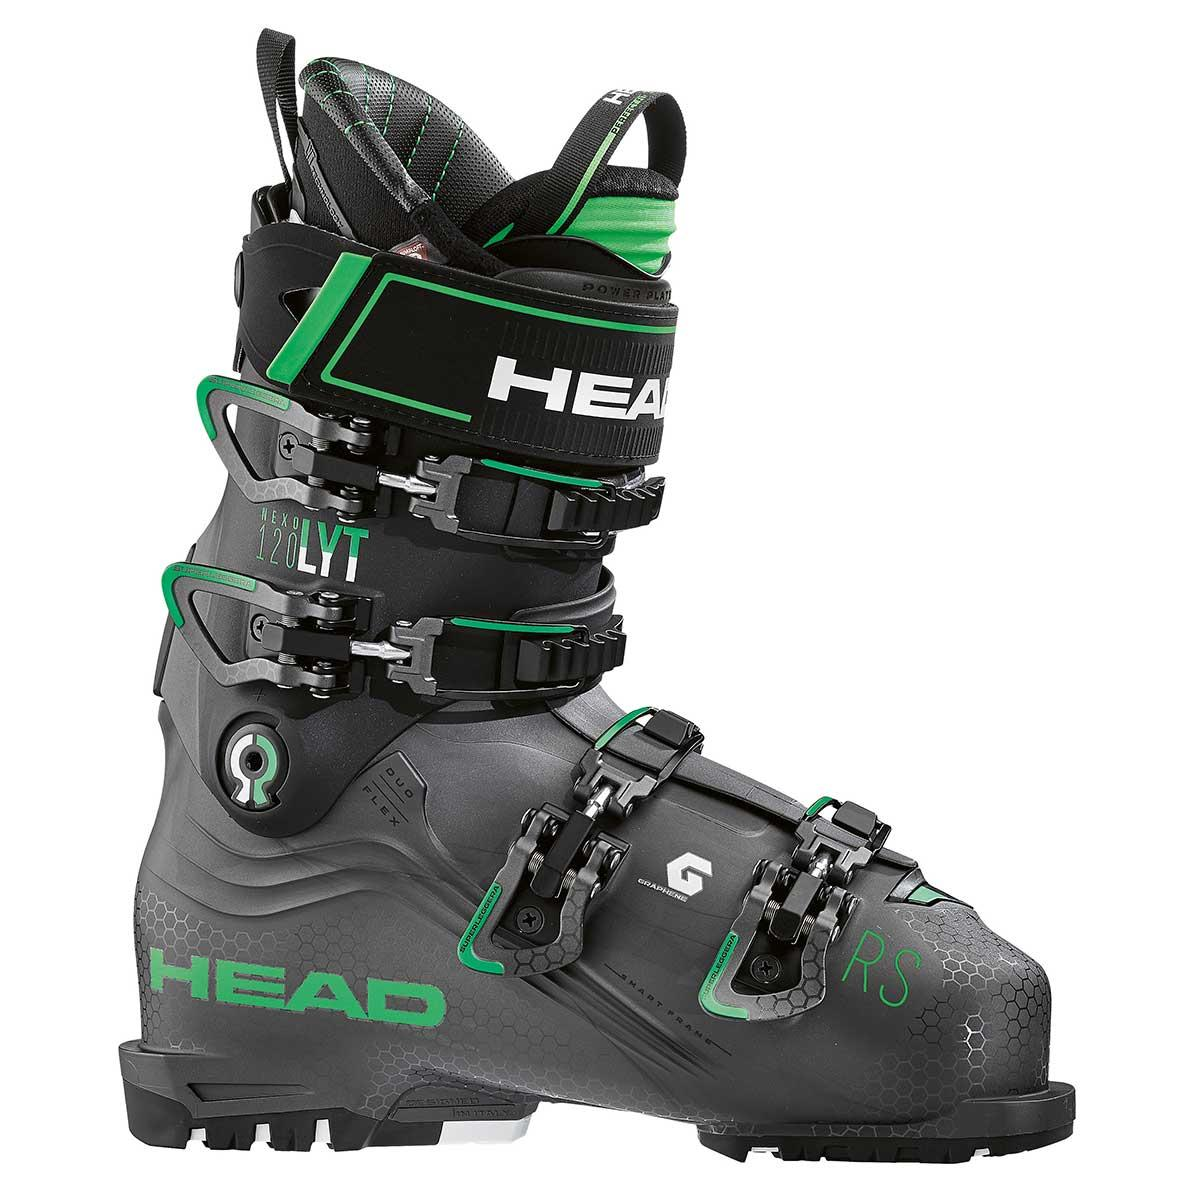 Head NEXO LYT 120 RS ski boot in anthracite and green